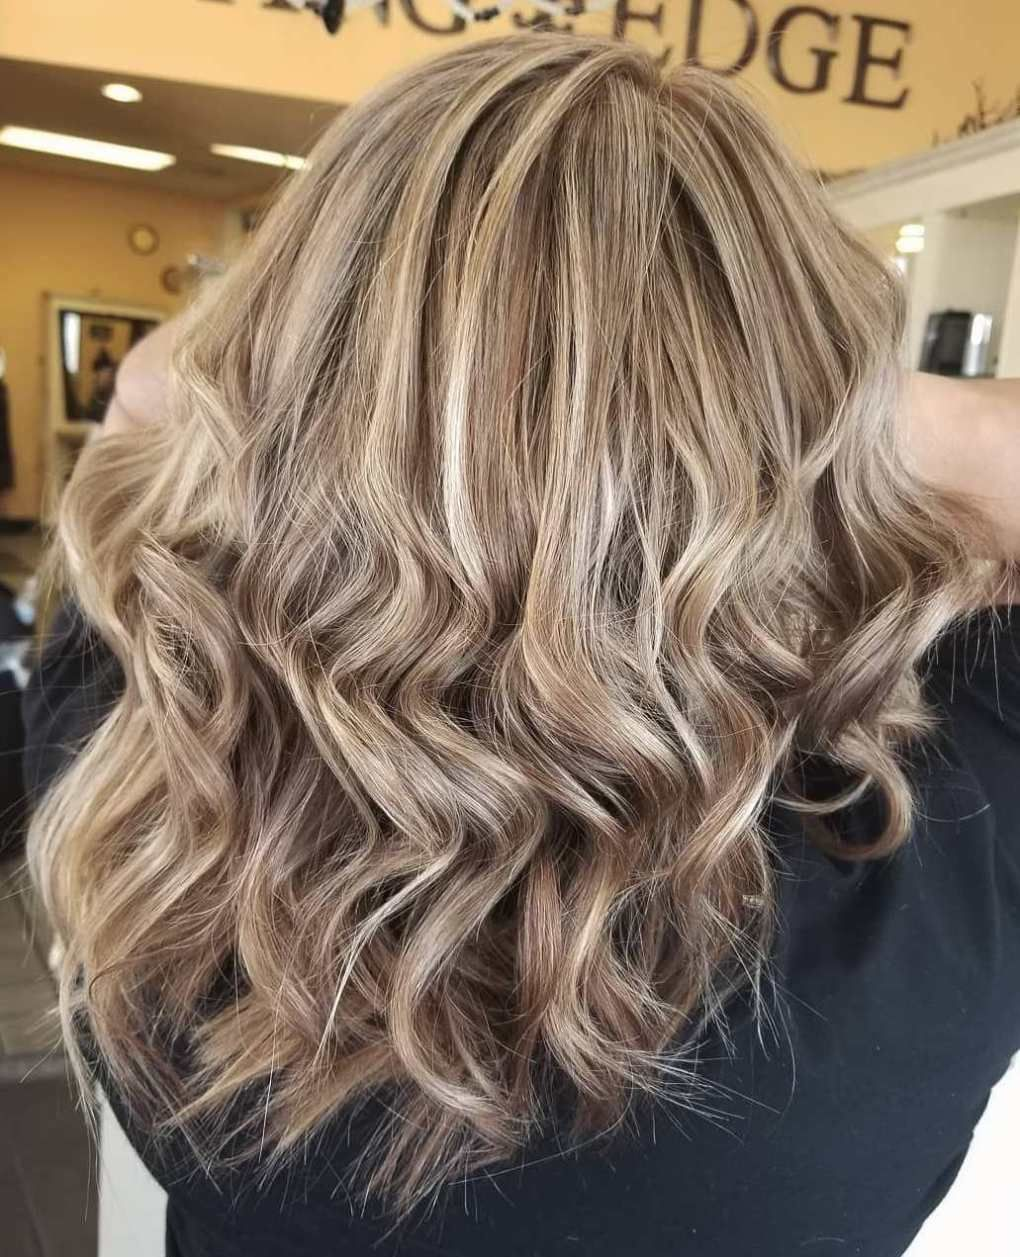 What S The Difference Between Partial And Full Highlights Dark Hair With Highlights Blonde Foils Partial Blonde Highlights